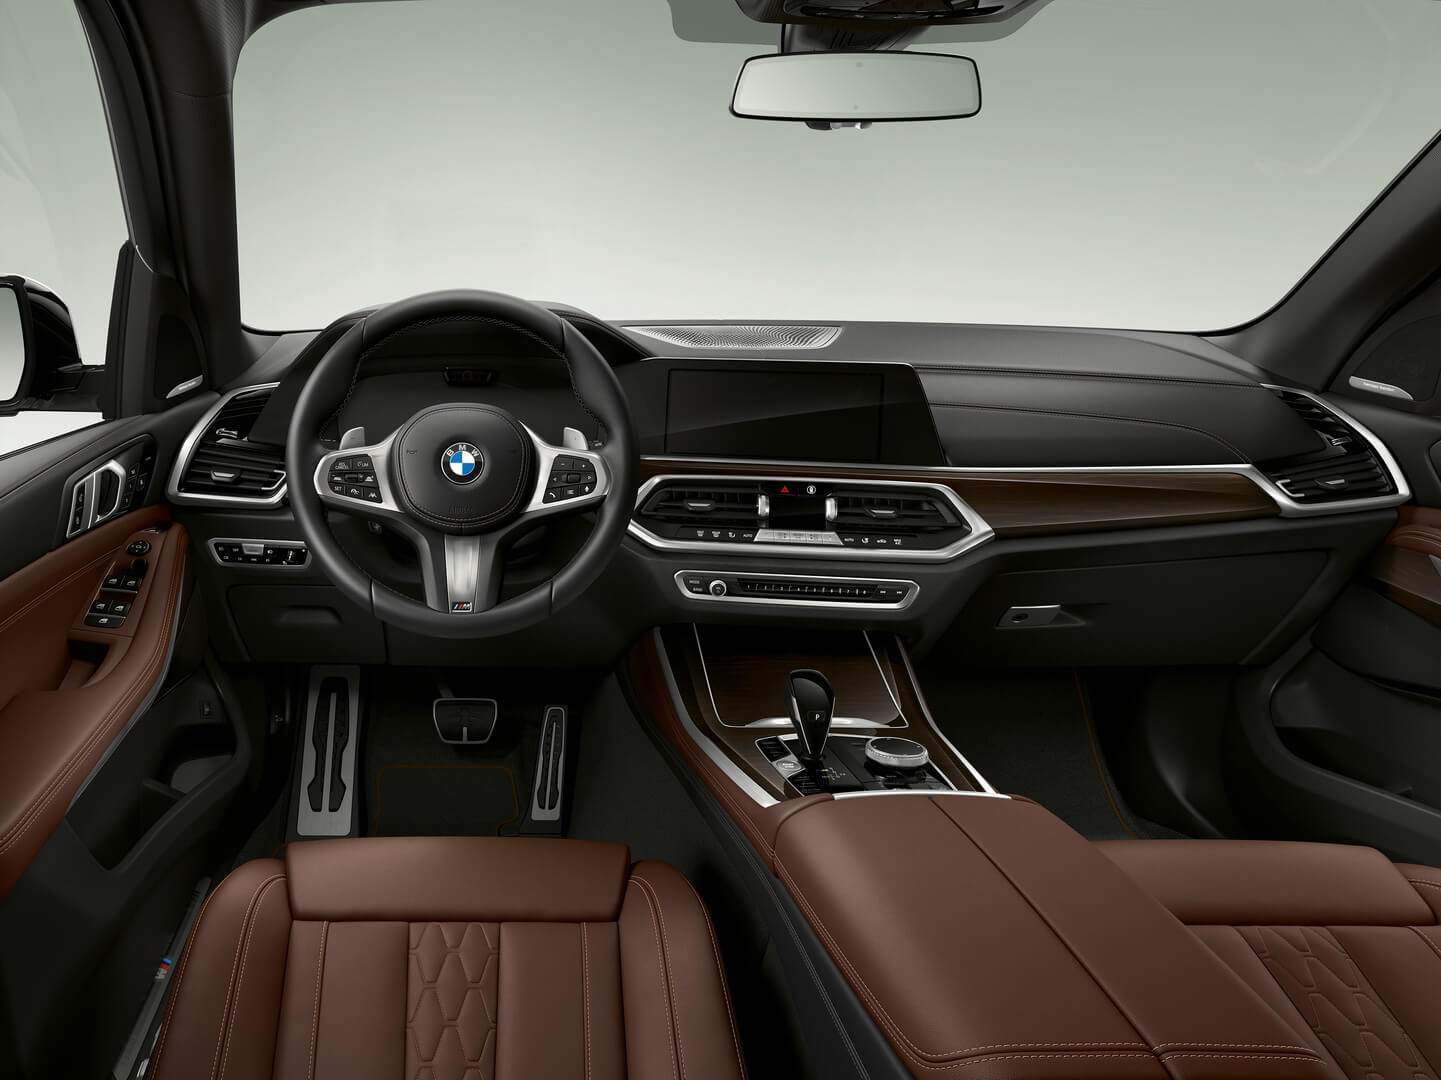 BMW X5 XDrive45e-interior-6